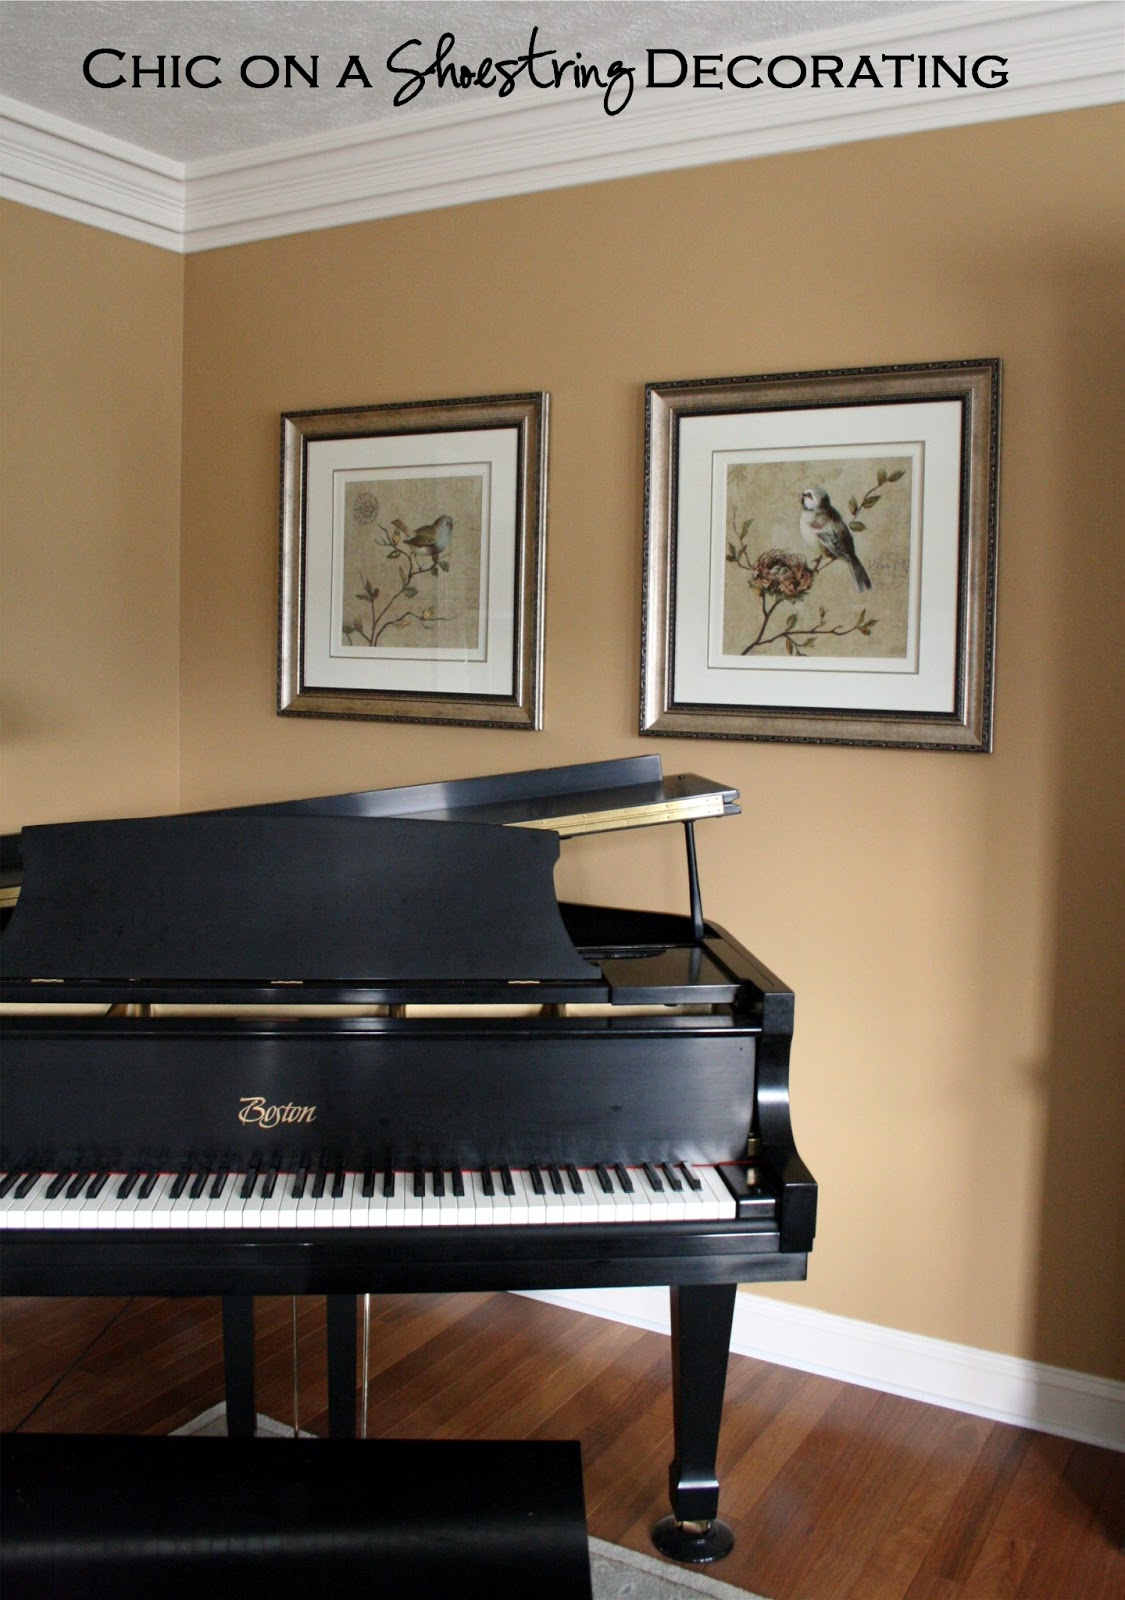 Help Me Design My Living Room: Chic On A Shoestring Decorating: Grand Piano Living Room